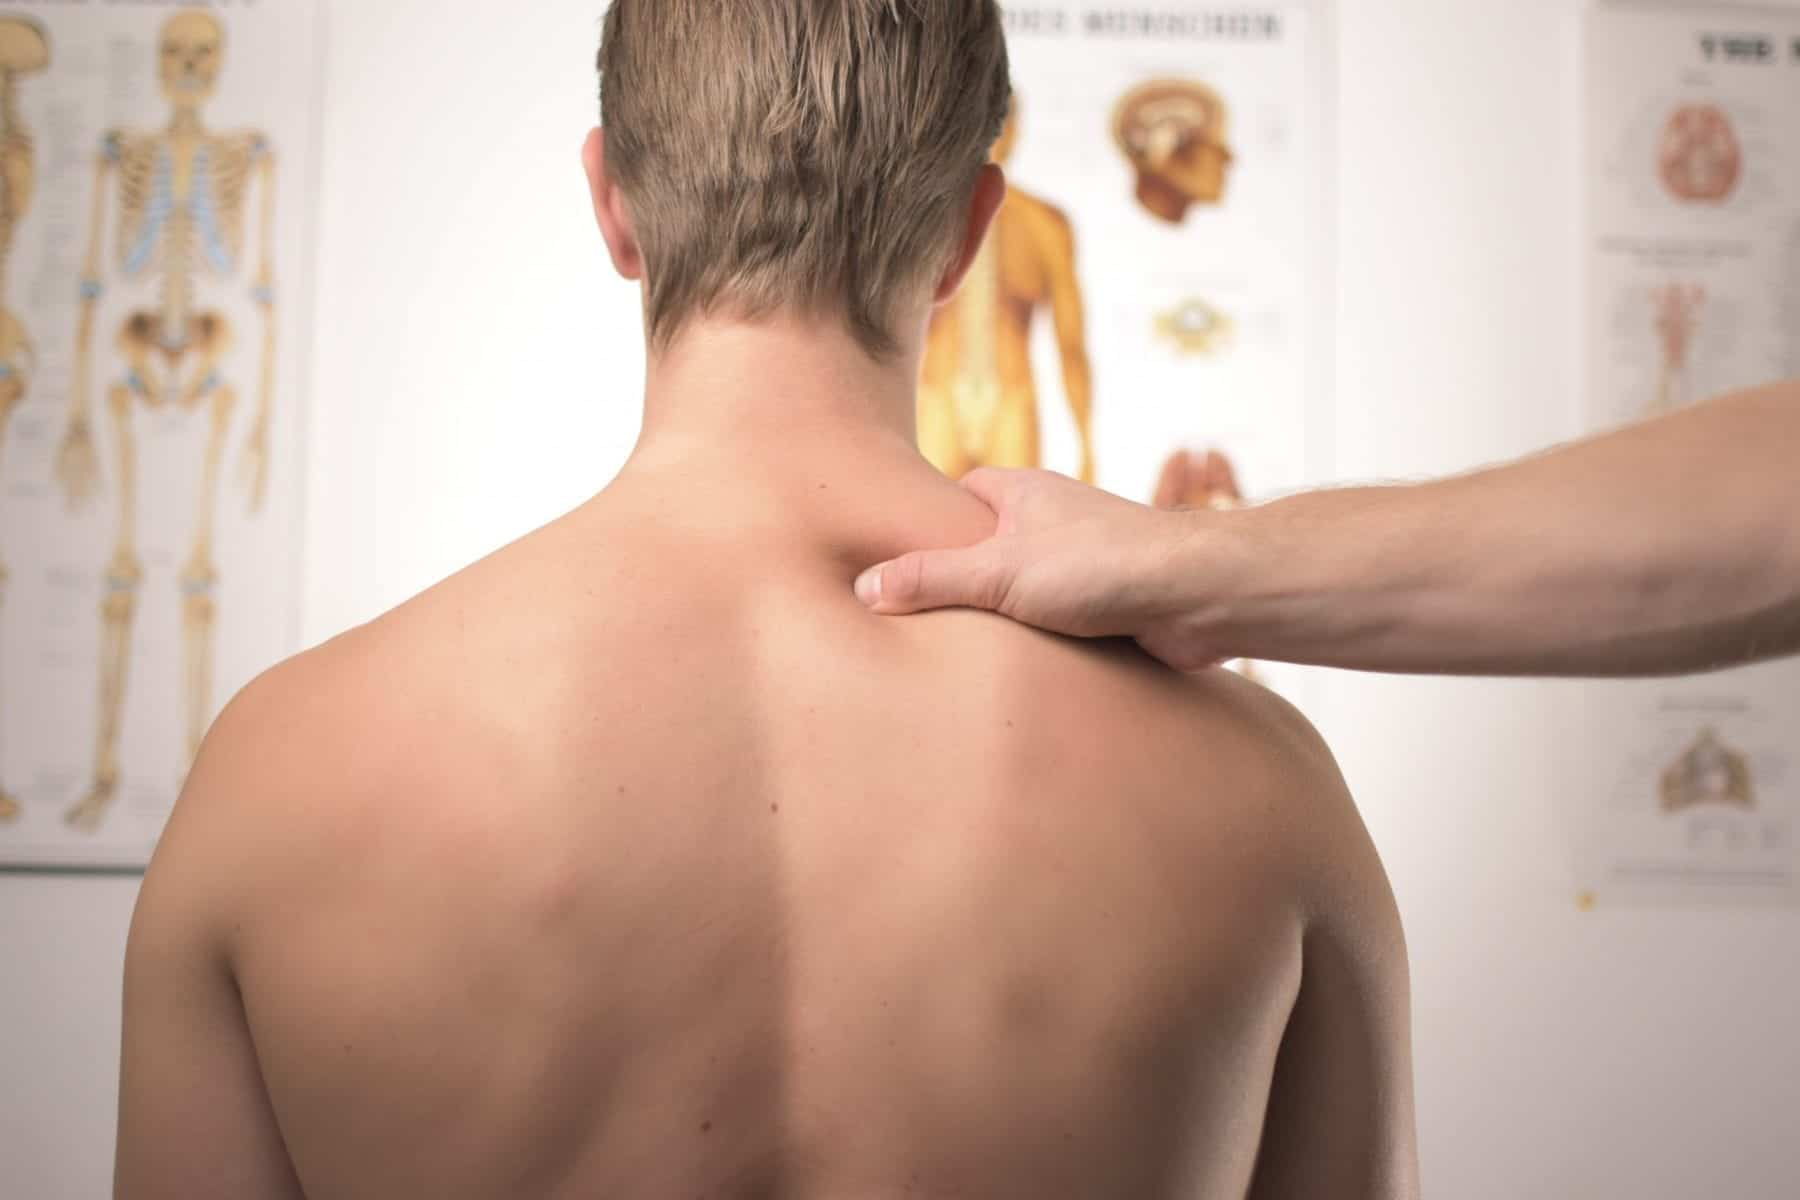 Why do I Have Severe Neck Pain or Severe Back Pain? Know the Most Common Causes